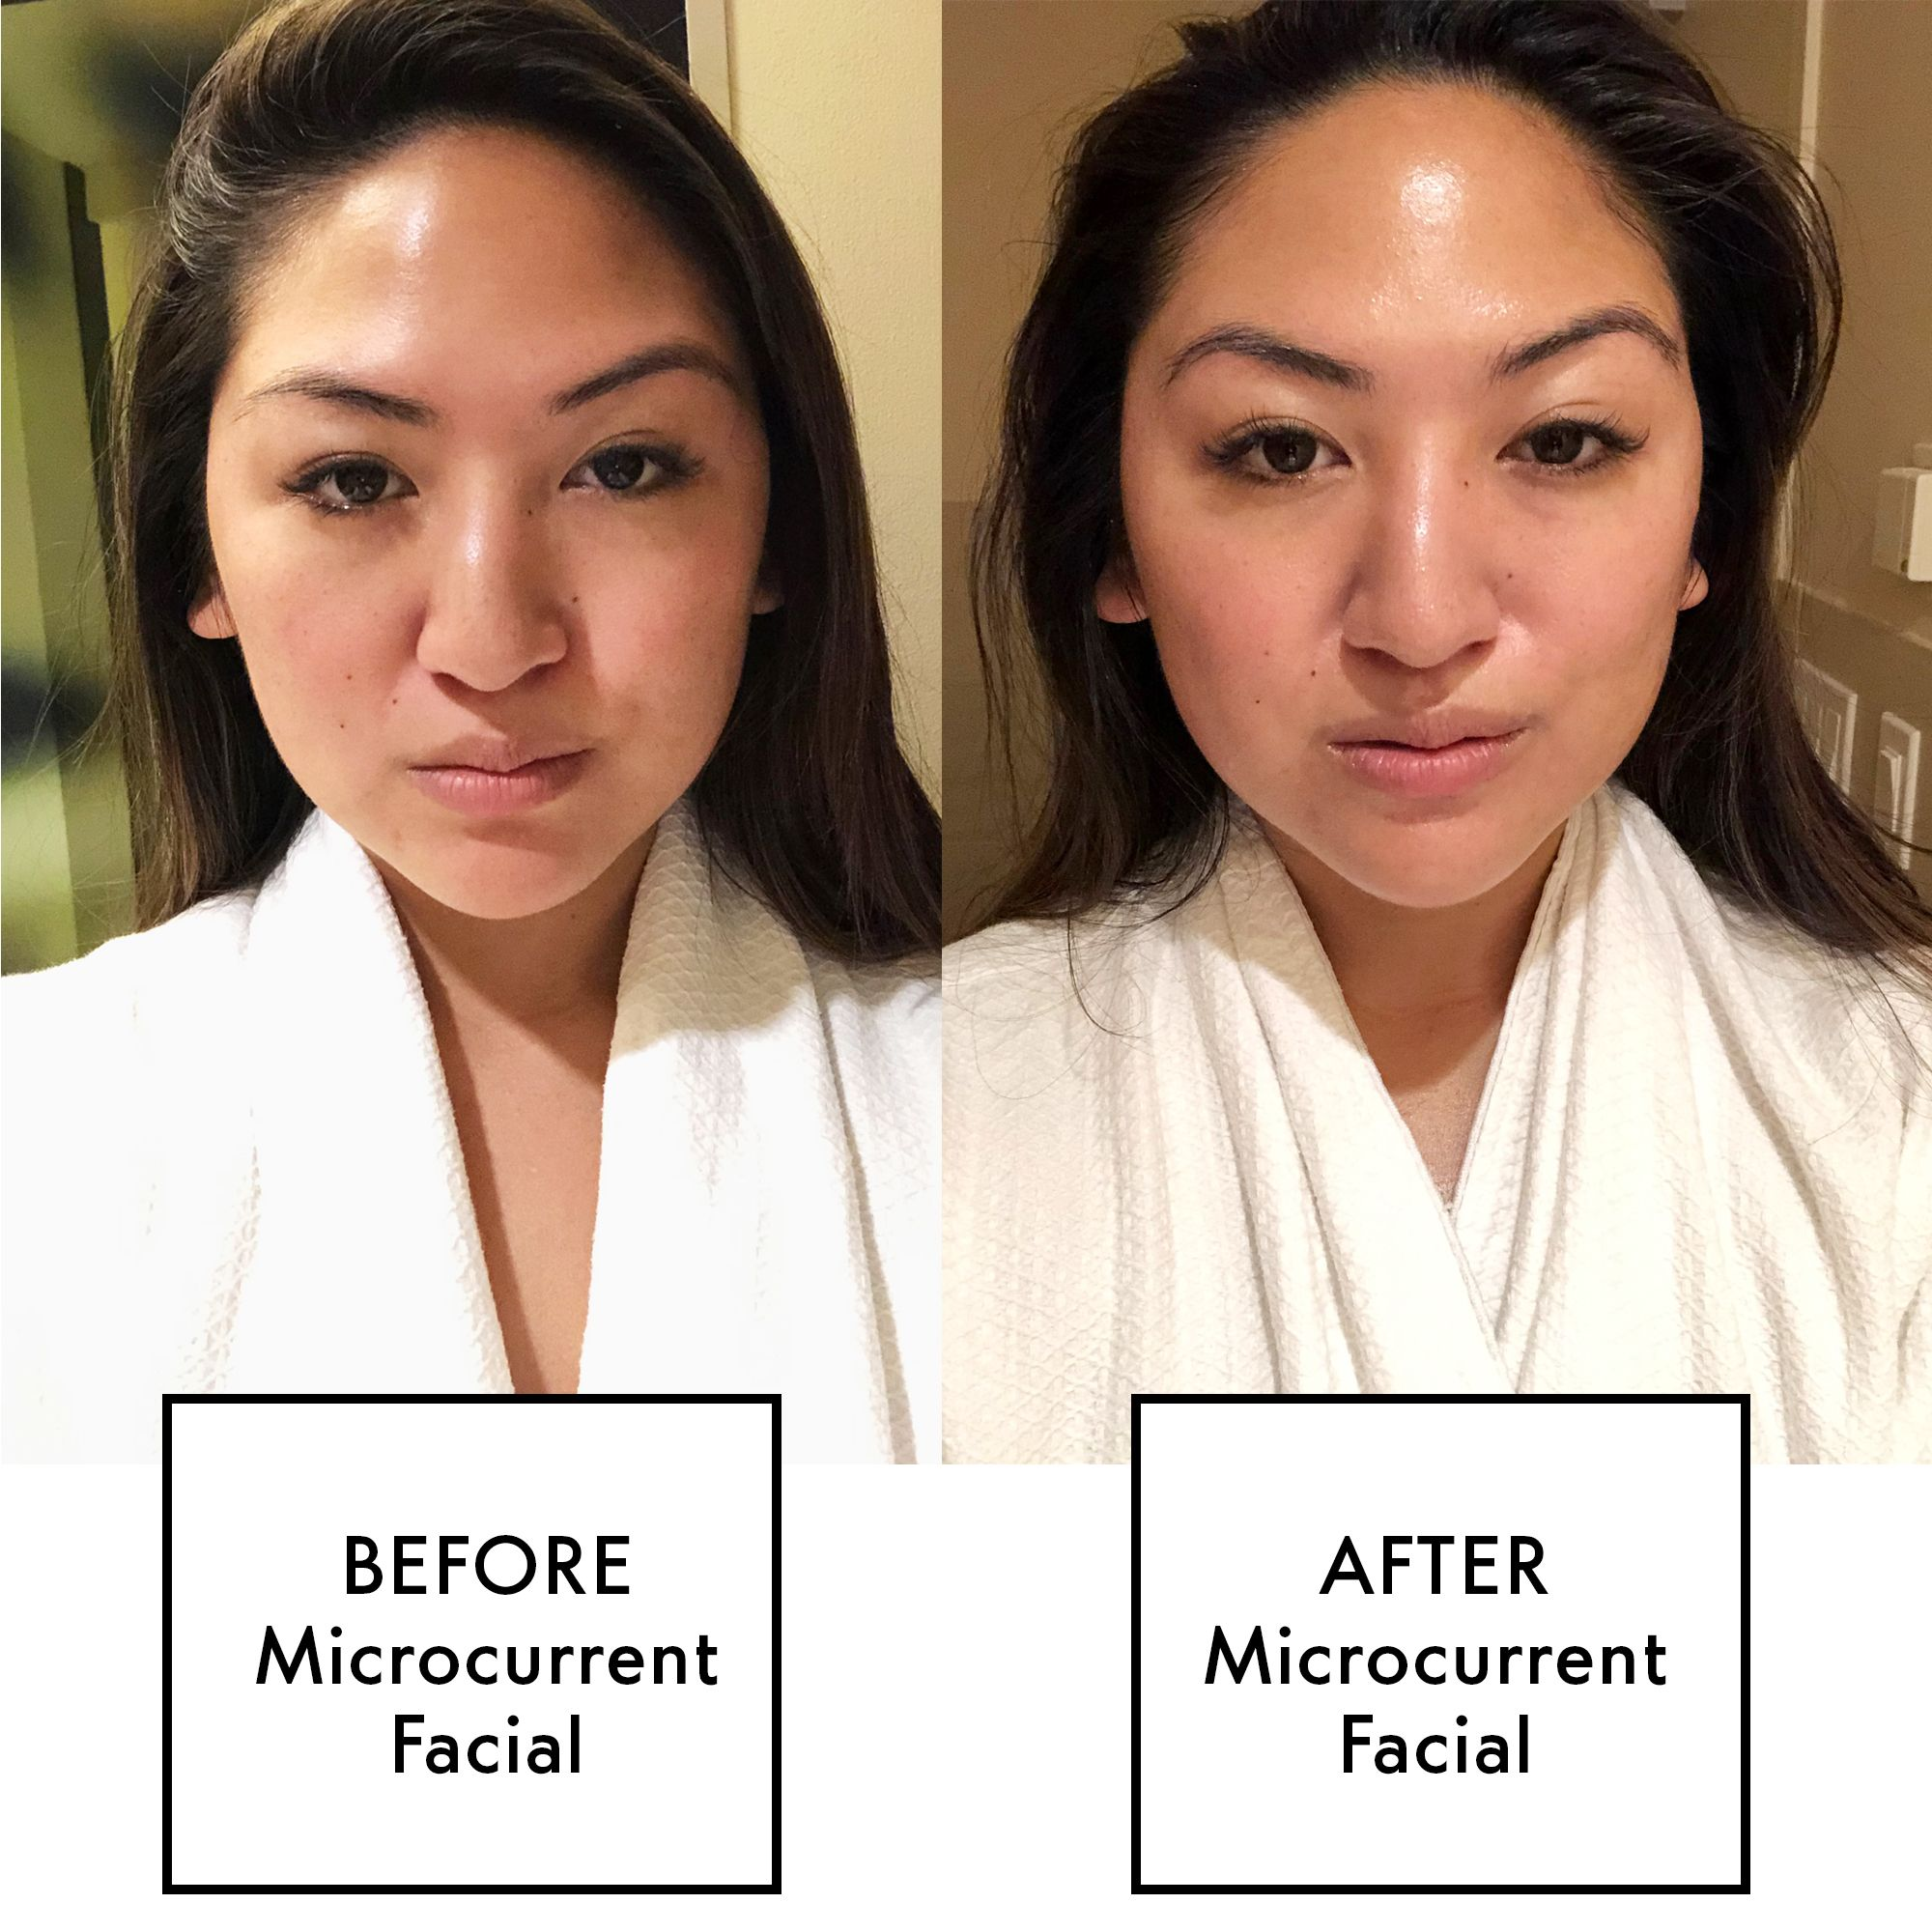 What Is a Microcurrent Facial? - Microcurrent Facial Review